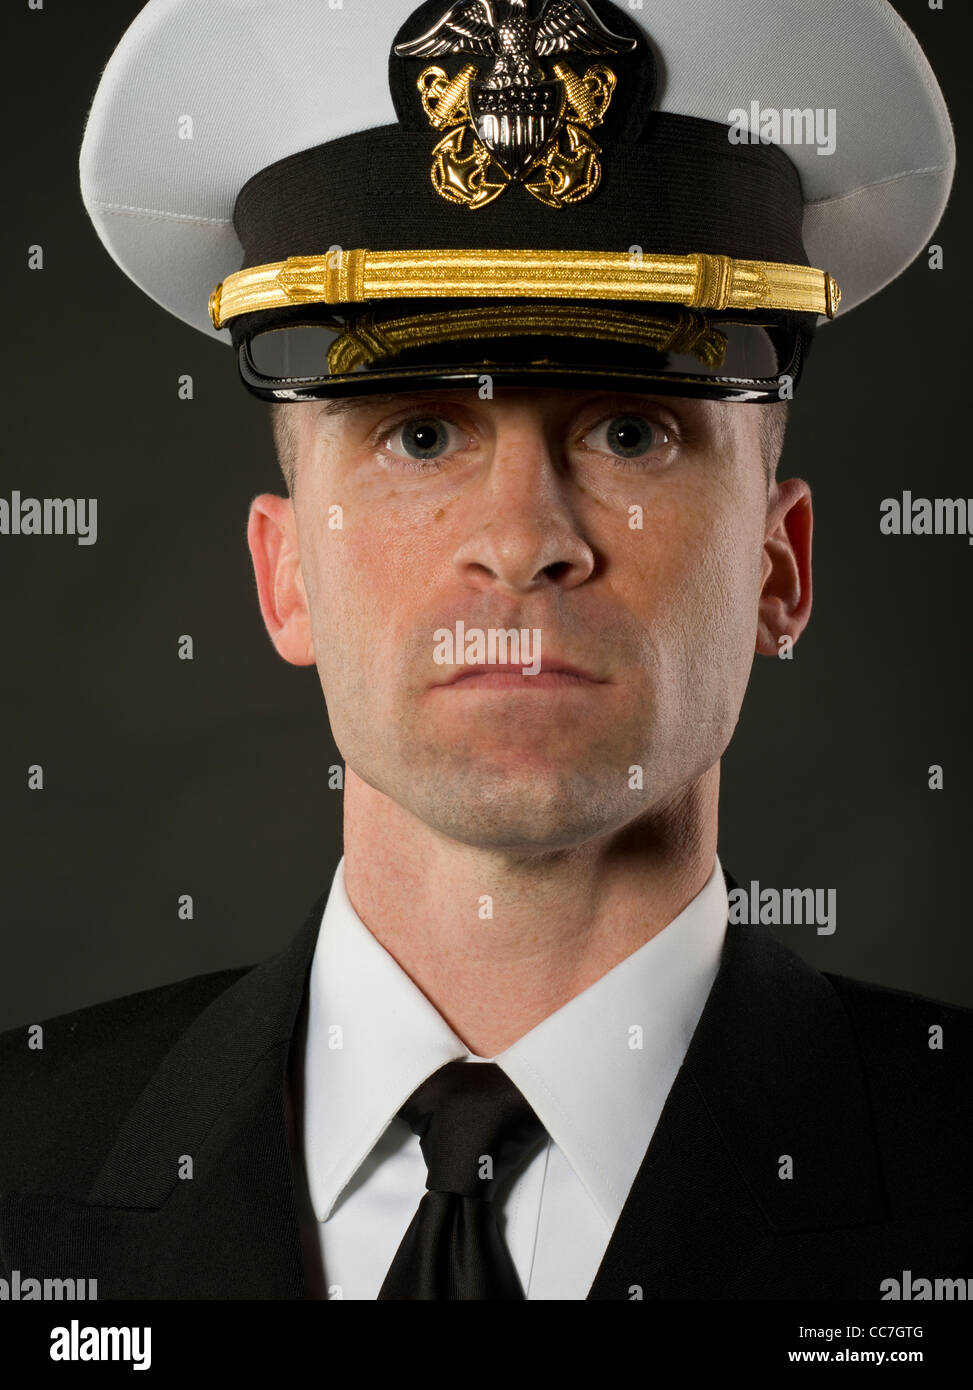 United States Navy Officer in Service Dress Blues Uniform ...